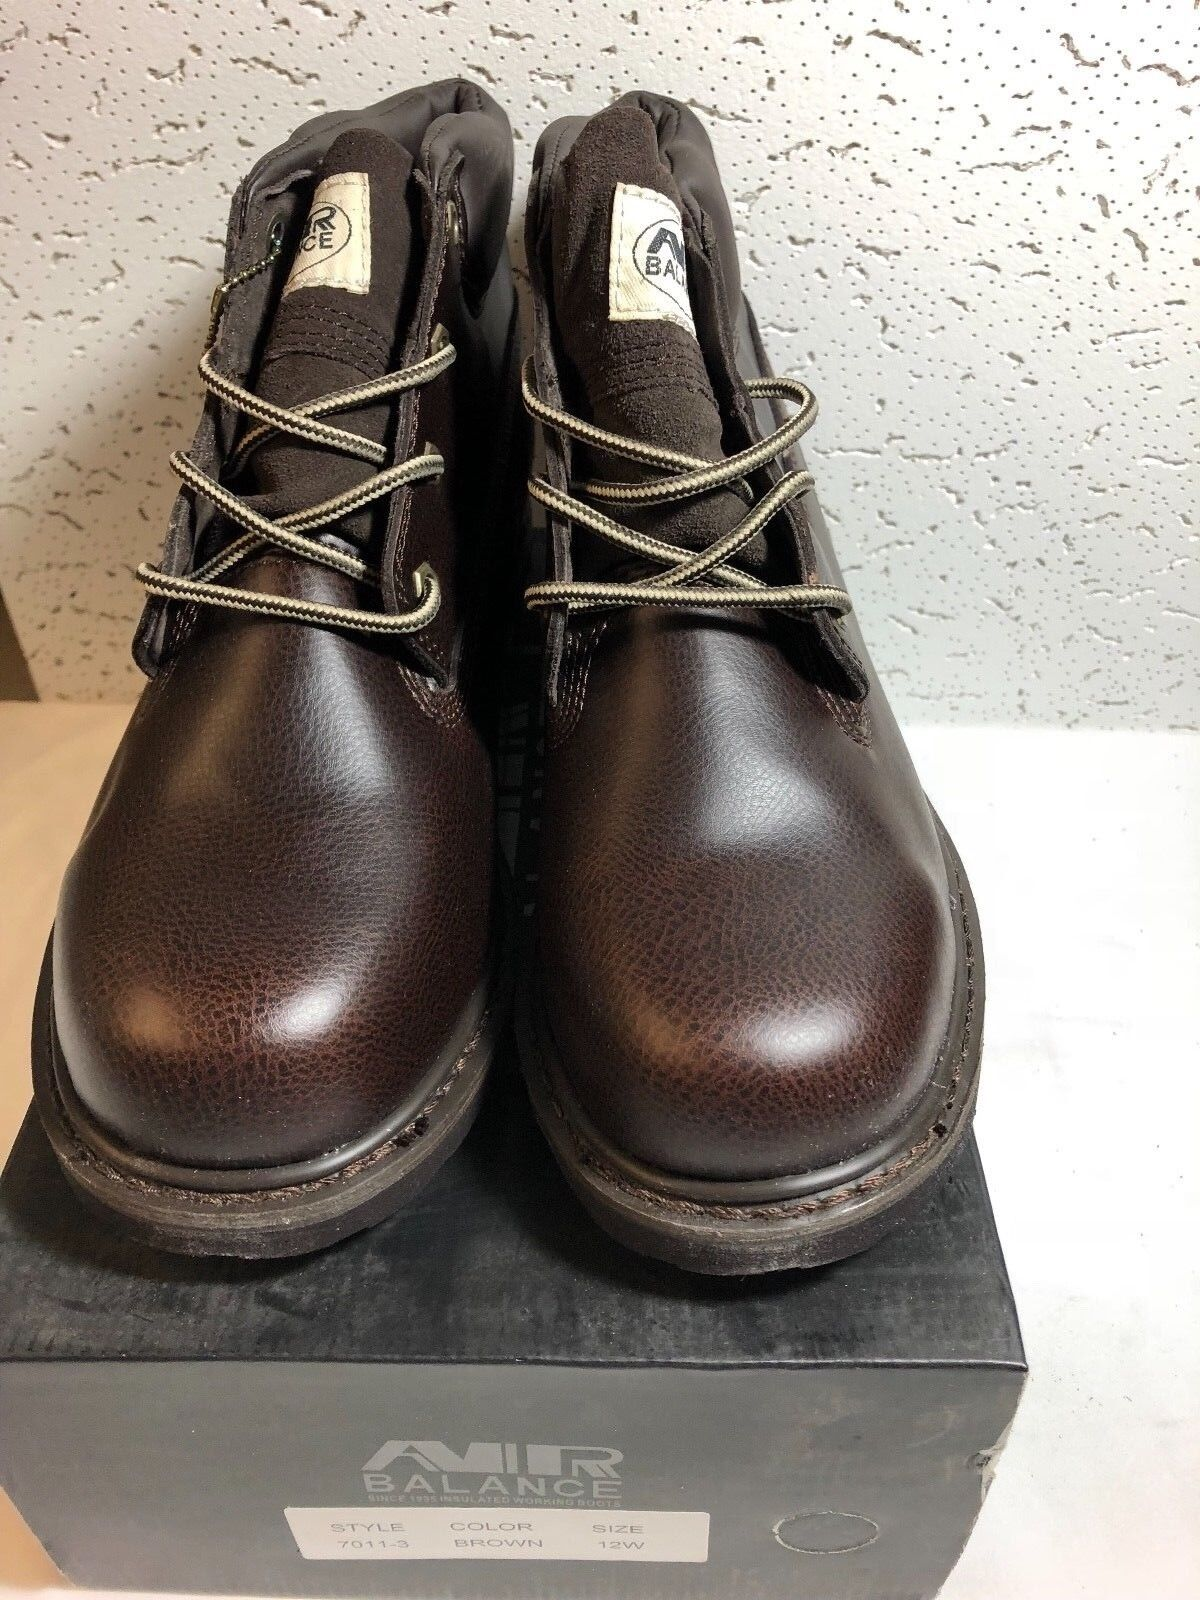 AIR BALANCE MEN INSULATED 4  GENUINE LEATHER CONSTRUCTION BOOTS SIZE 13W BROWN